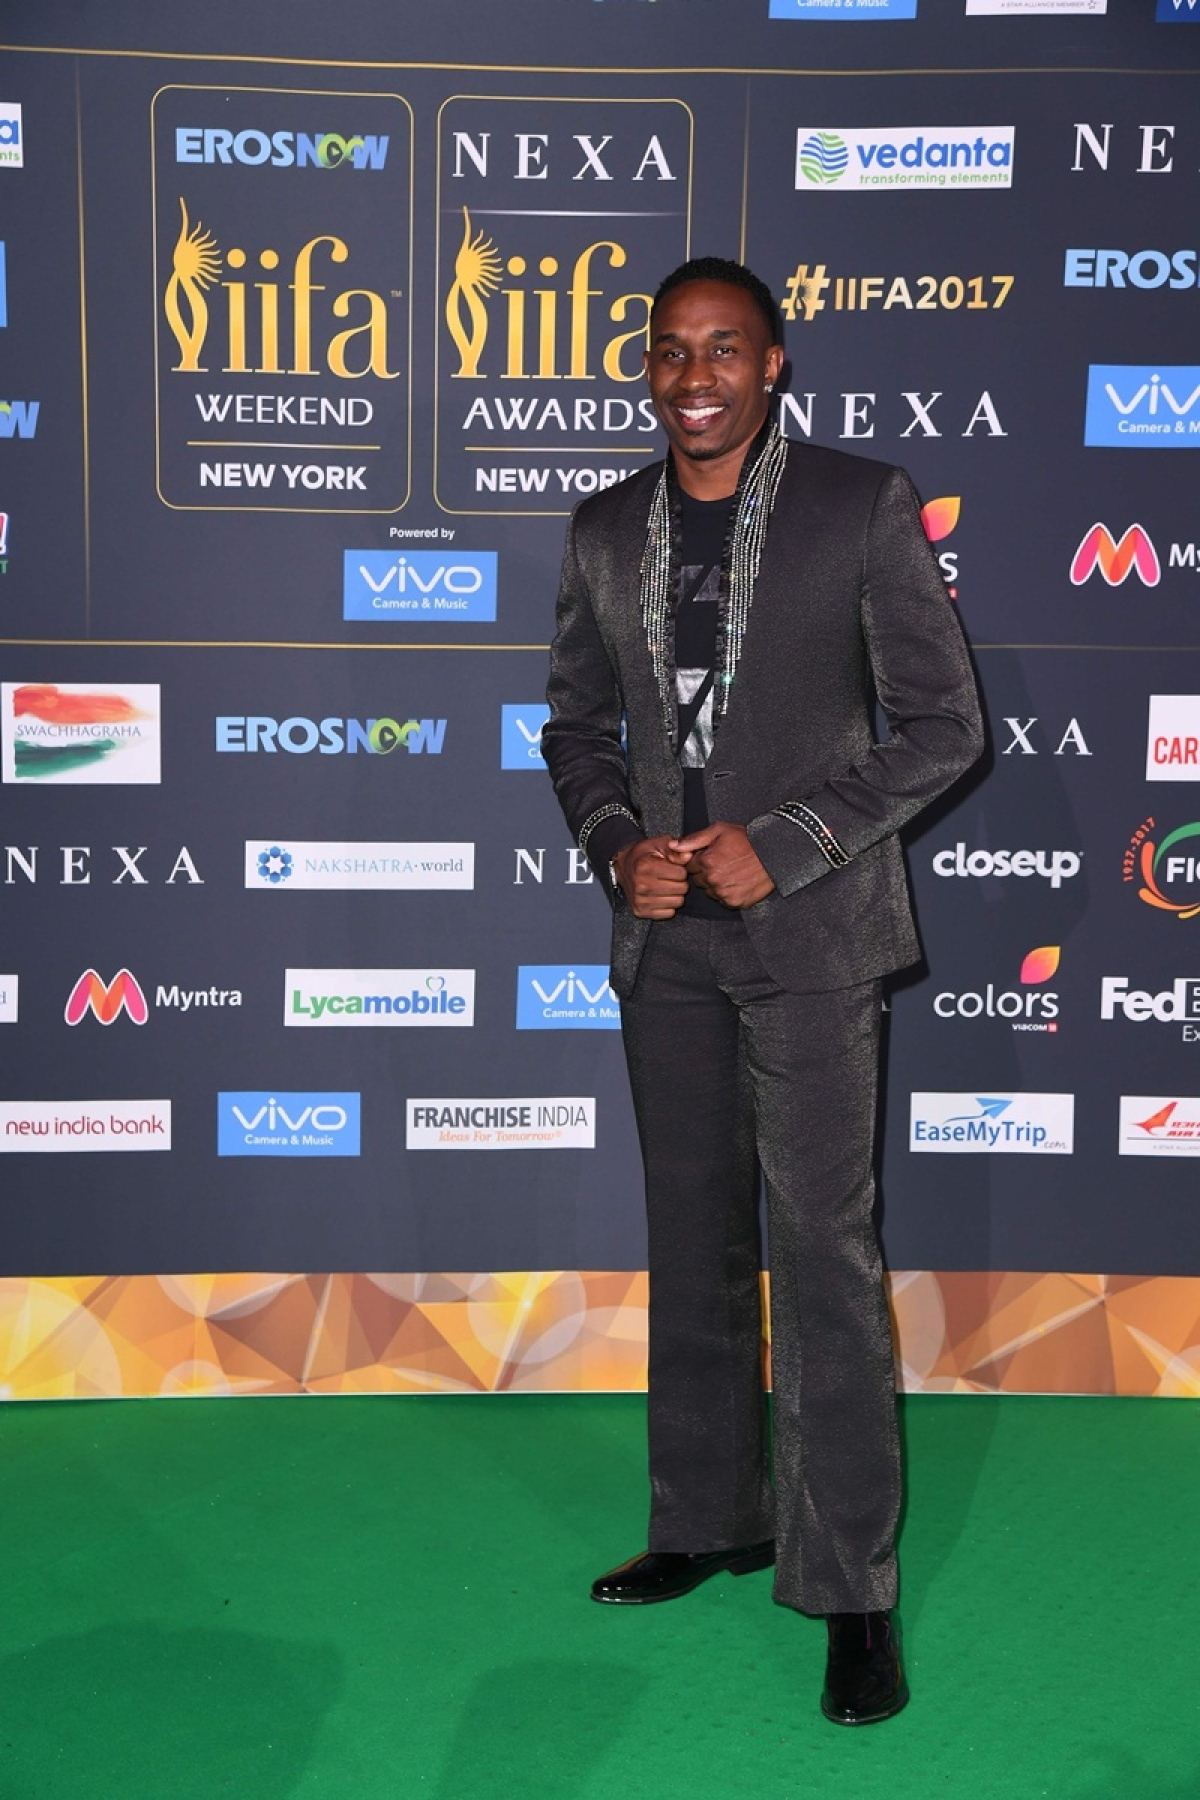 West Indies cricket player Dwayne Bravo arrives for the IIFA Awards July 15, 2017 at the MetLife Stadium in East Rutherford, New Jersey during the 18th International Indian Film Academy (IIFA) Festival. / AFP PHOTO / ANGELA WEISS